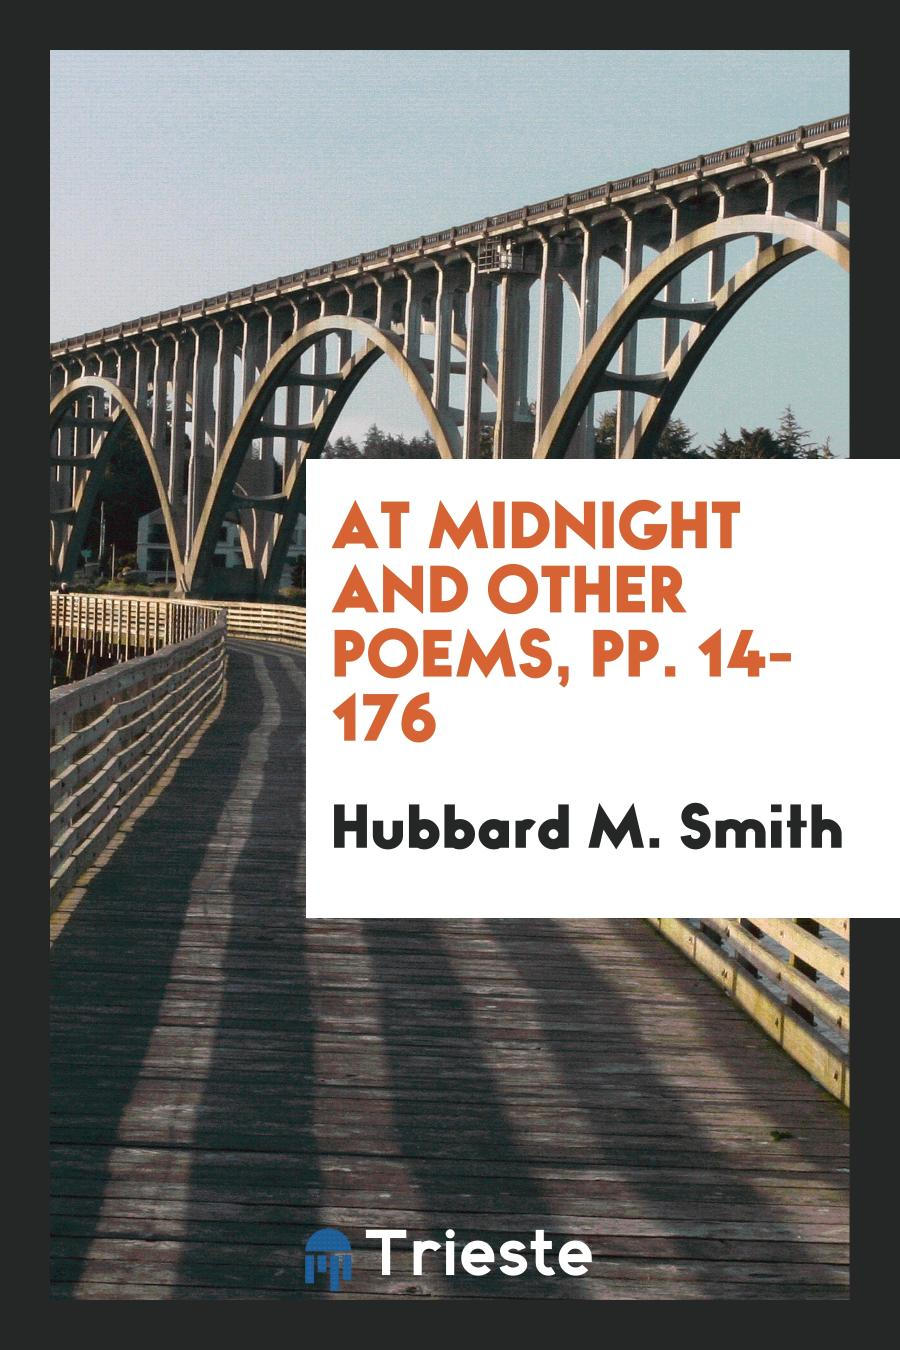 At Midnight and Other Poems, pp. 14-176